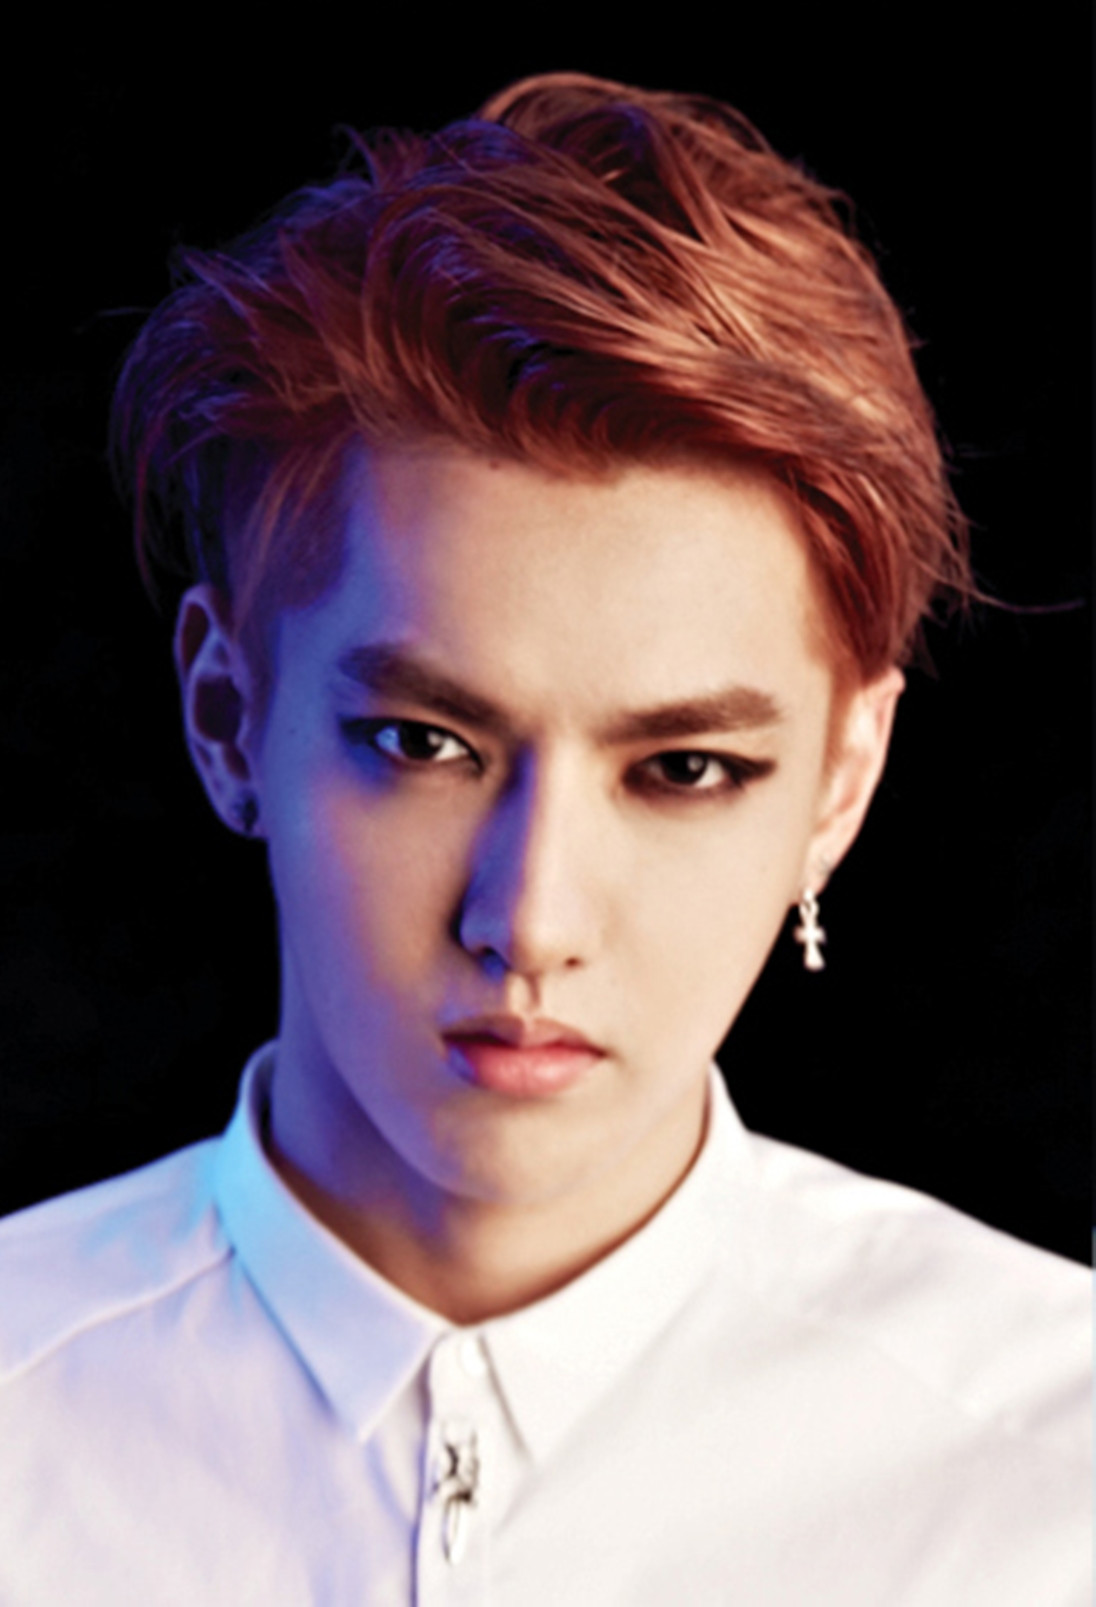 Oh Law Firm >> Exo's Kris Files Lawsuit Against SM – seoulbeats